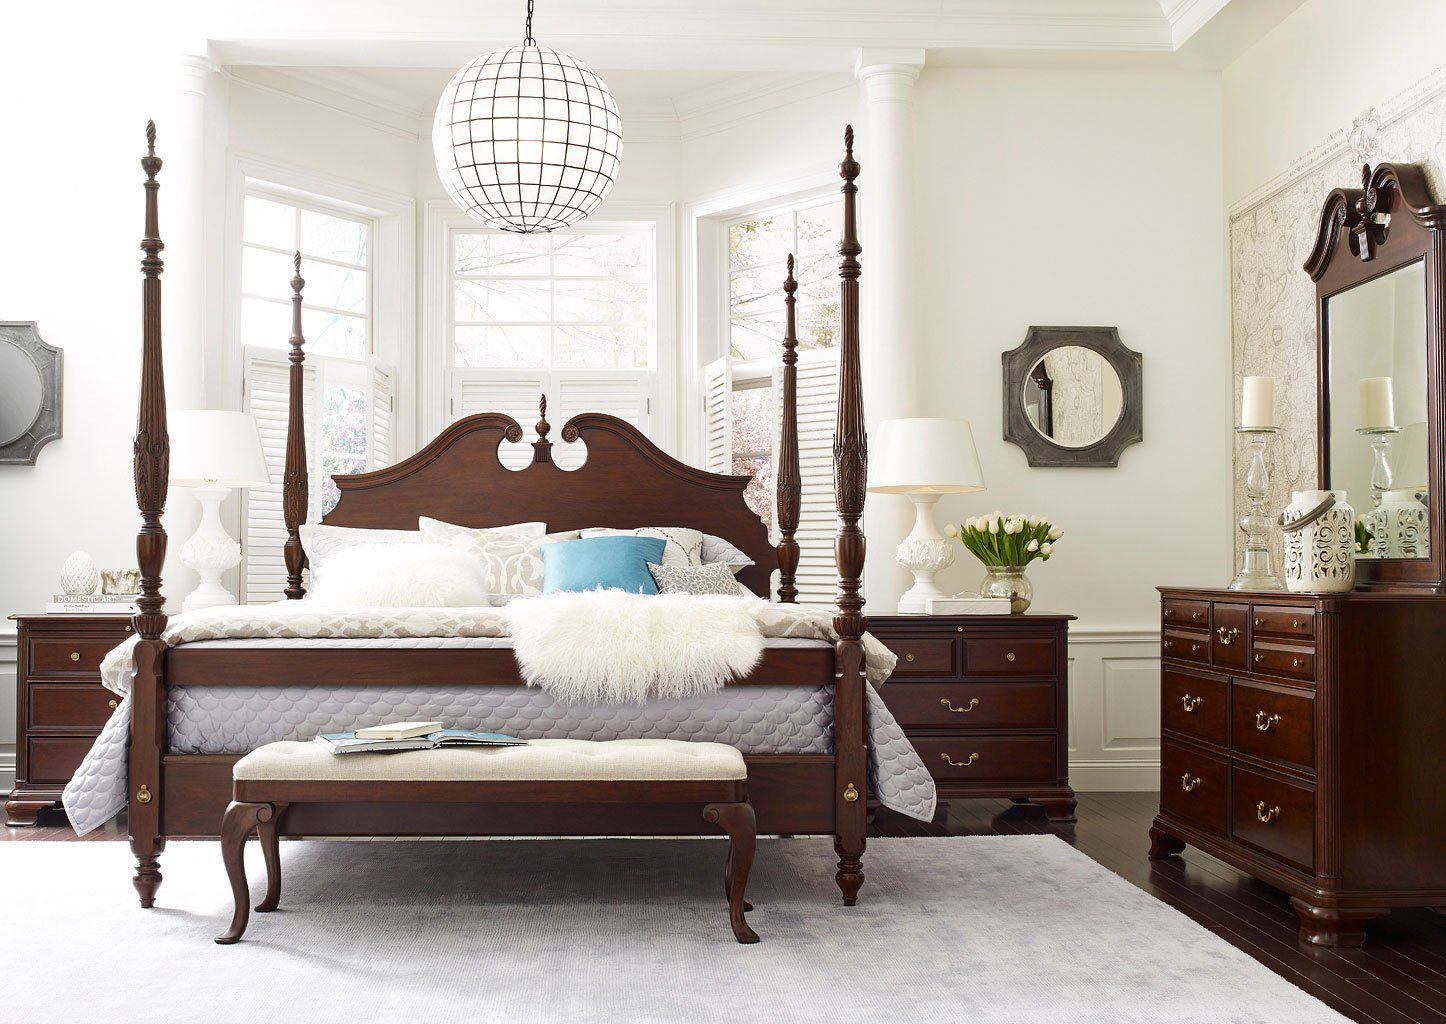 Hadleigh Rice Carved Poster Bedroom Set (With images